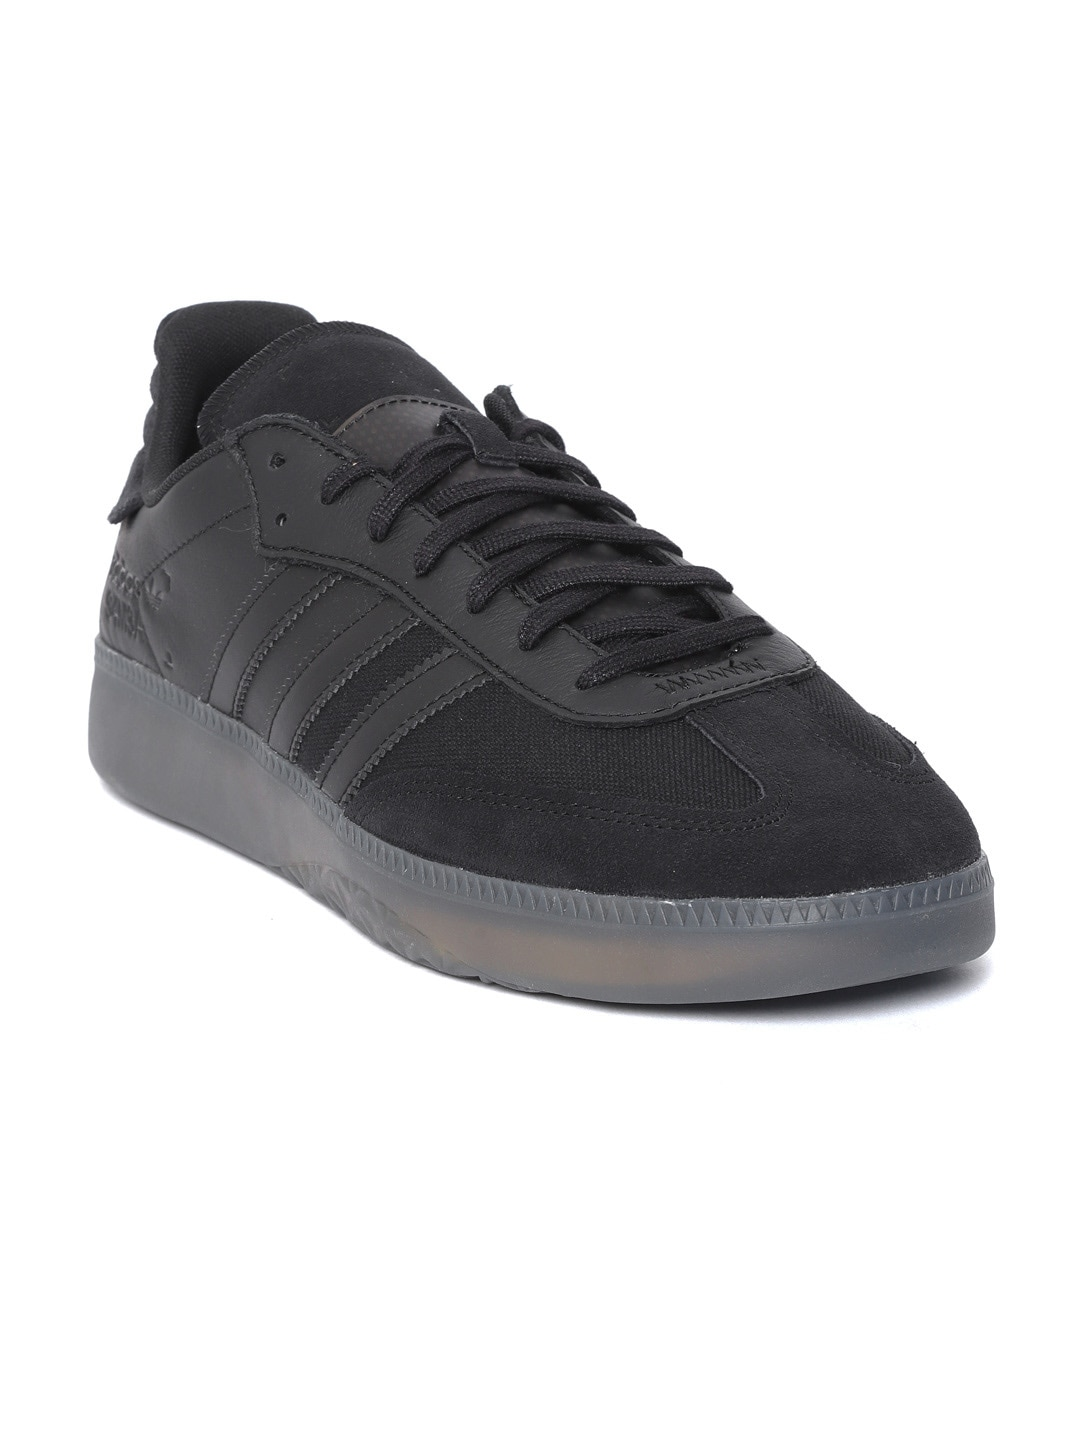 buy popular 715b3 10f23 Adidas Shoes - Buy Adidas Shoes for Men   Women Online - Myntra